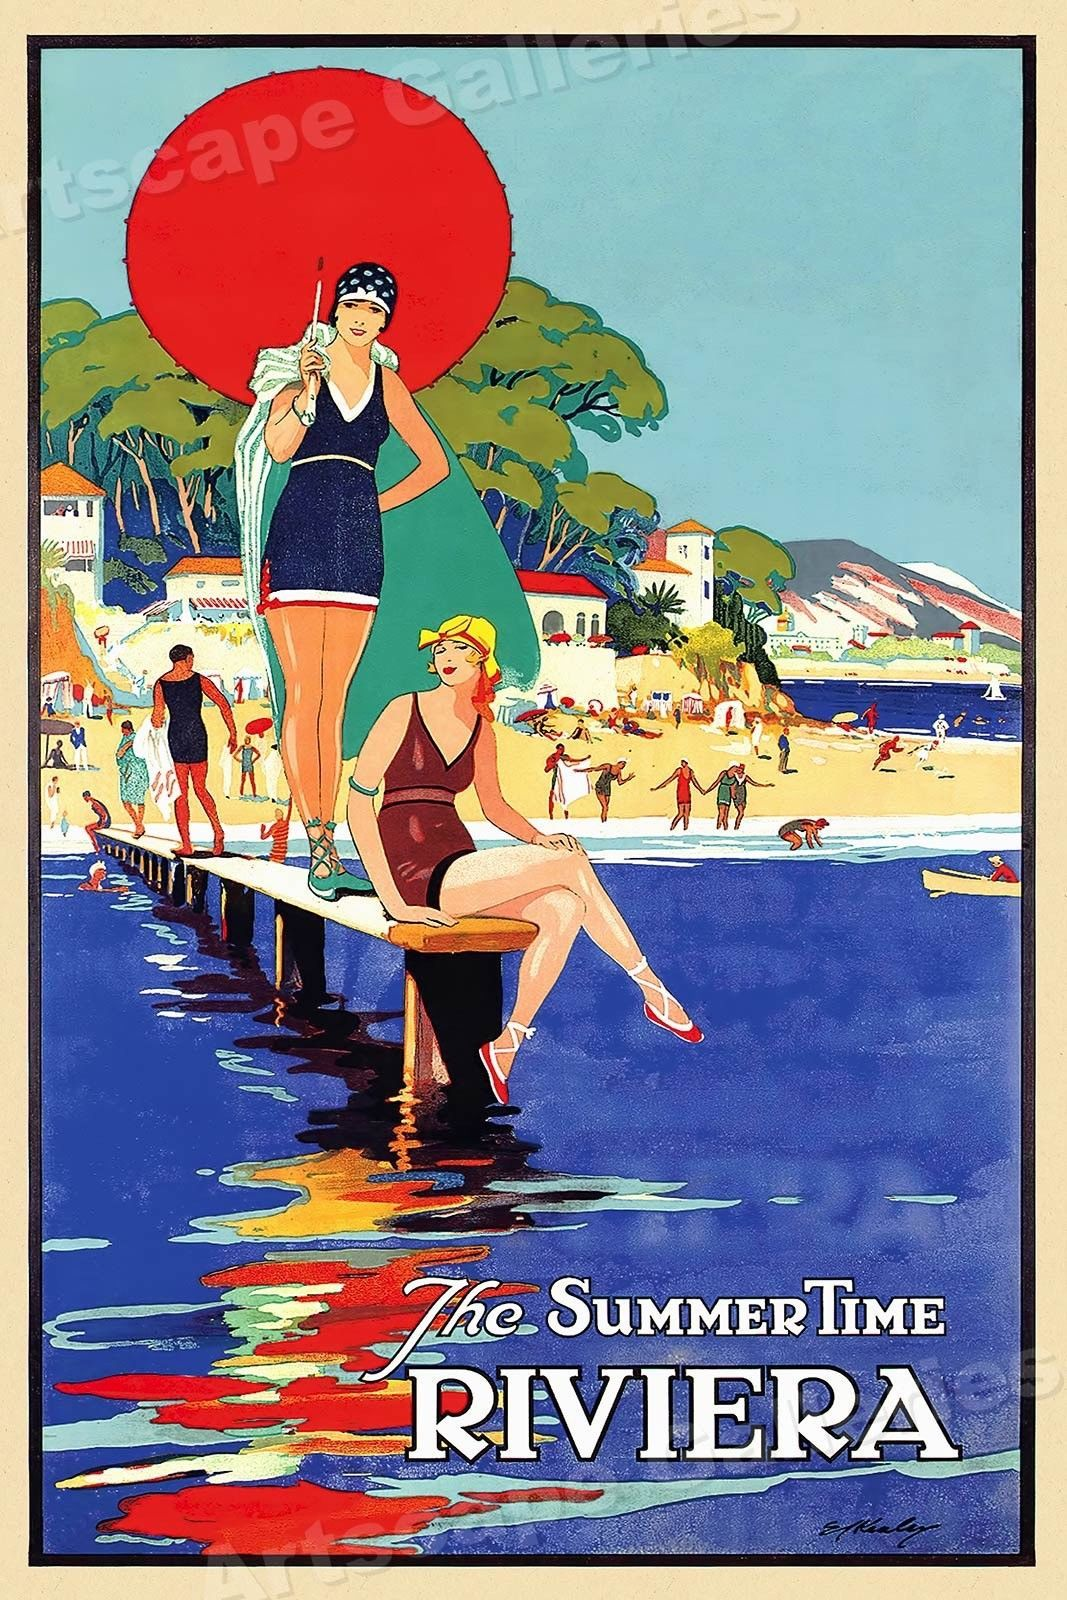 13 56 1930s Summer Time In The Riviera Vintage Style France Travel Poster 20x30 Ebay Collectibles Vintage Travel Posters Travel Posters Vintage Posters